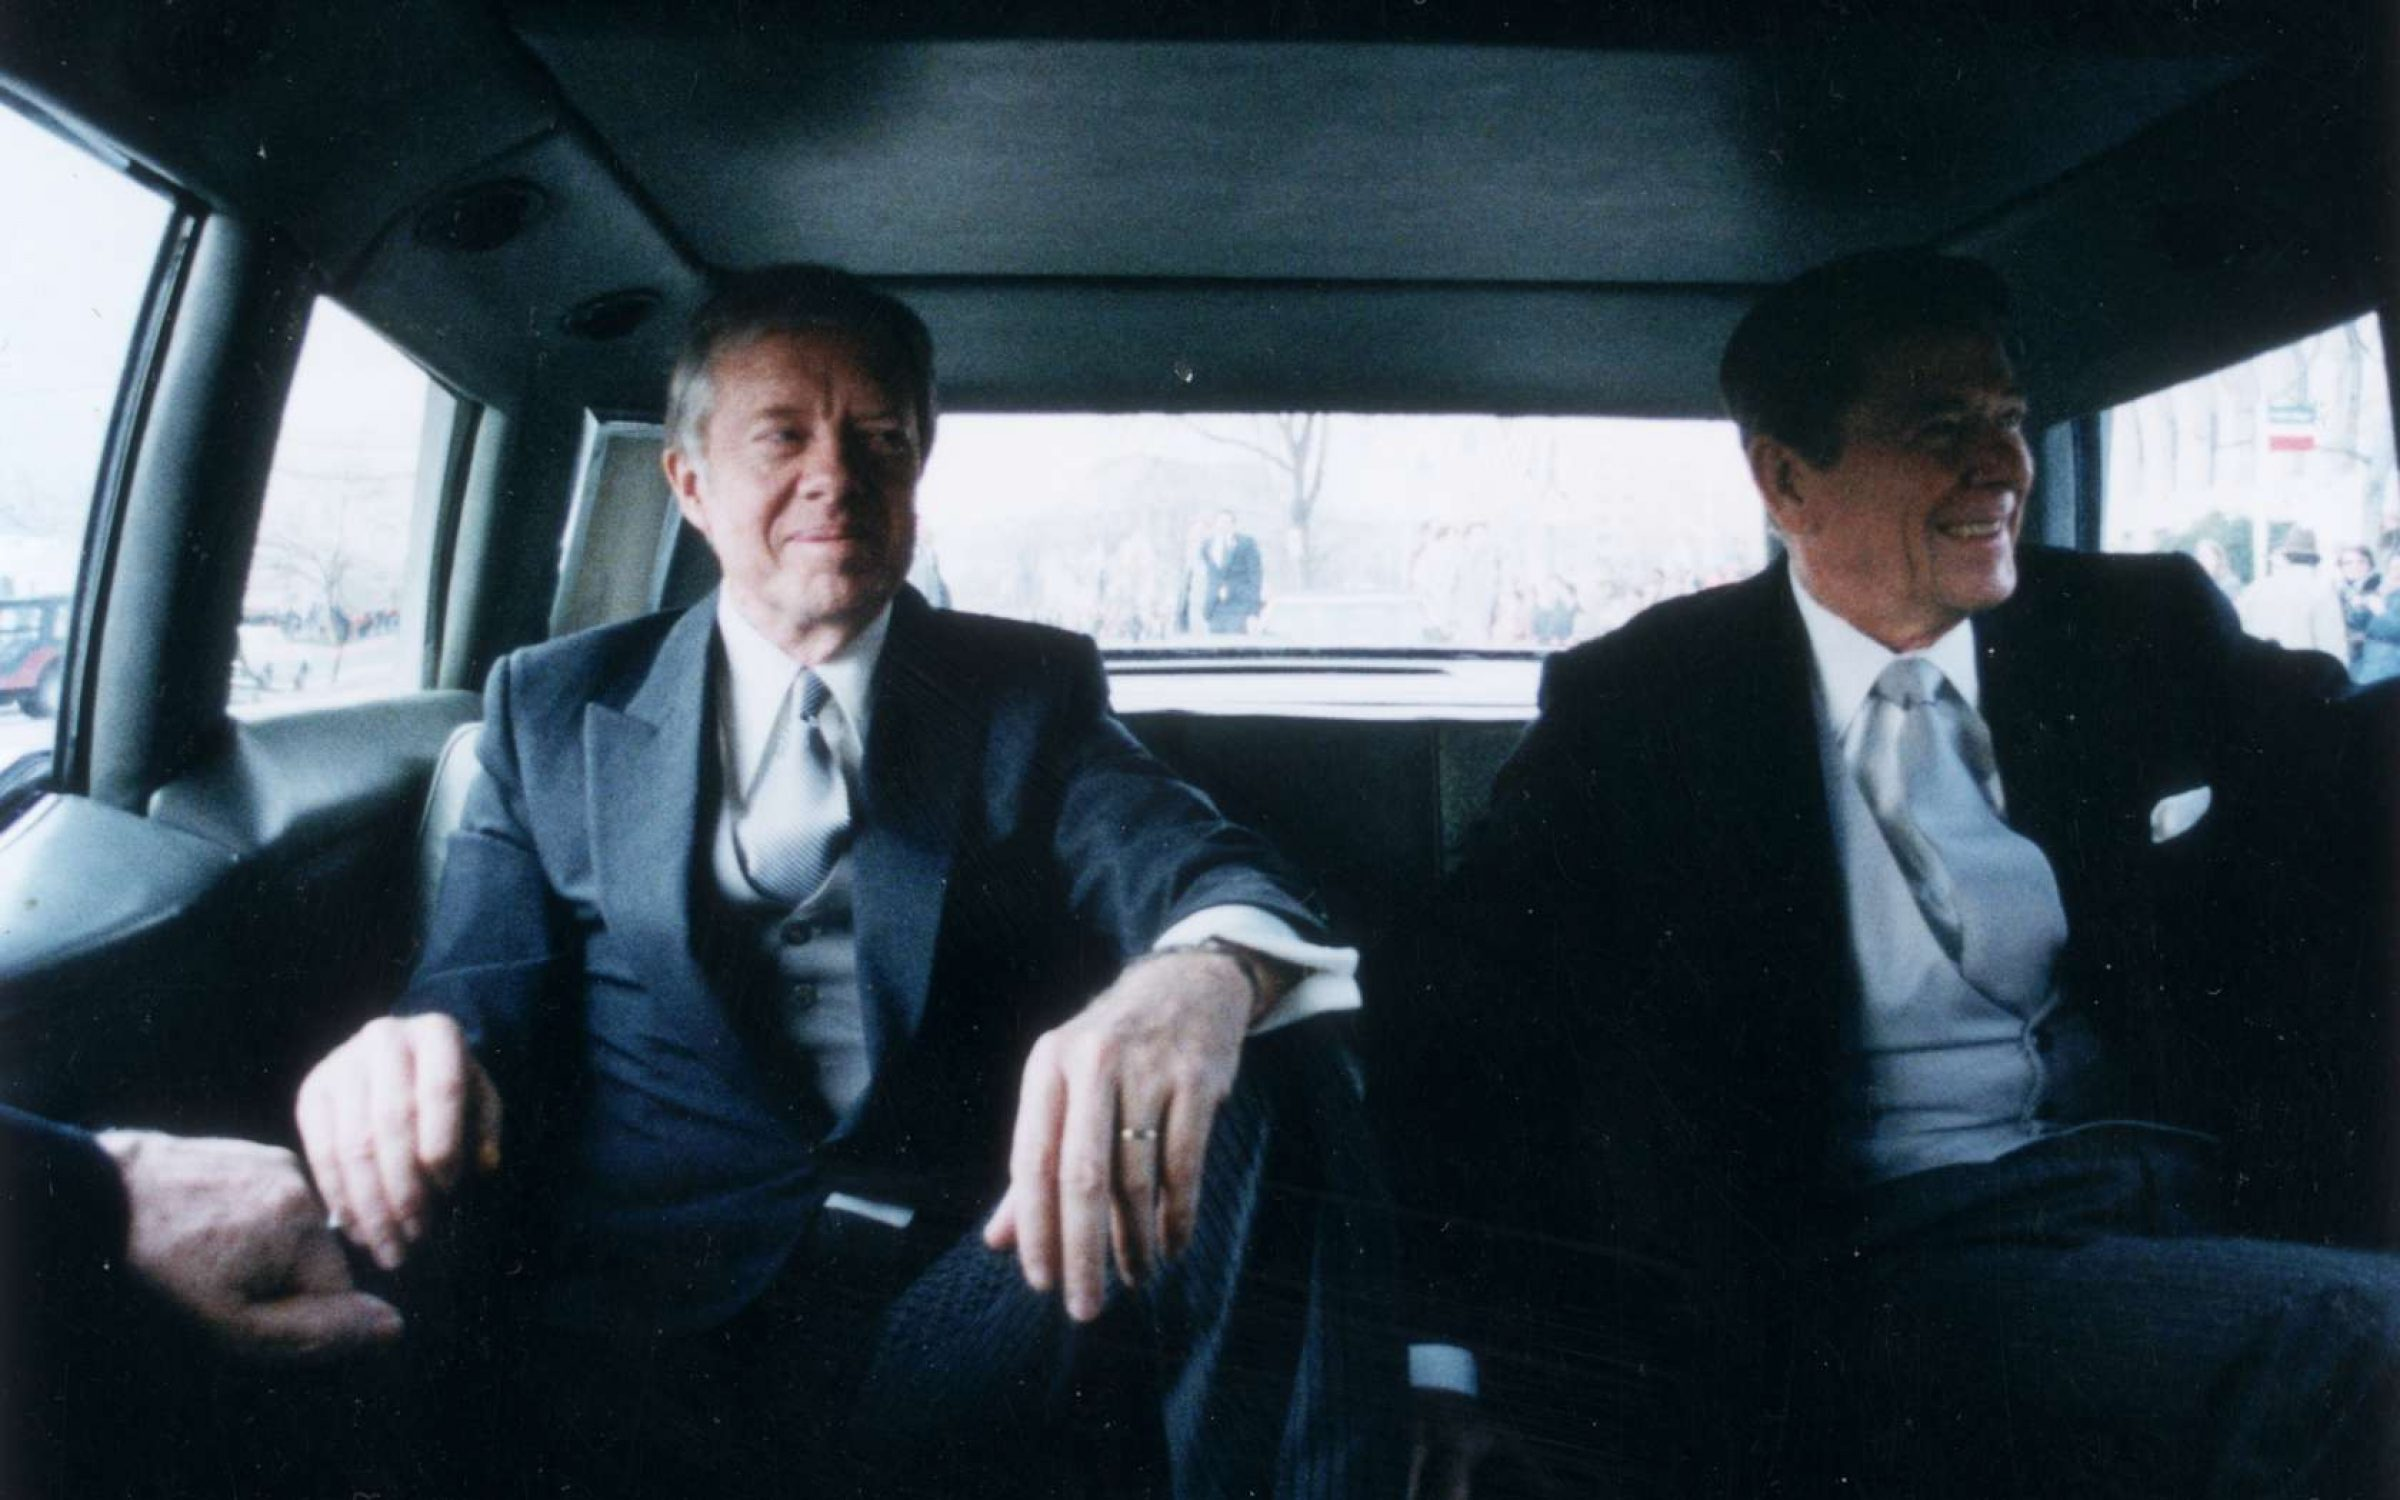 Outgoing US President Jimmy Carter and president-elect Ronald Reagan en route to Reagan's Presidential Inauguration Ceremony, January 1981 Credit: Ronald Reagan Library / Getty Images